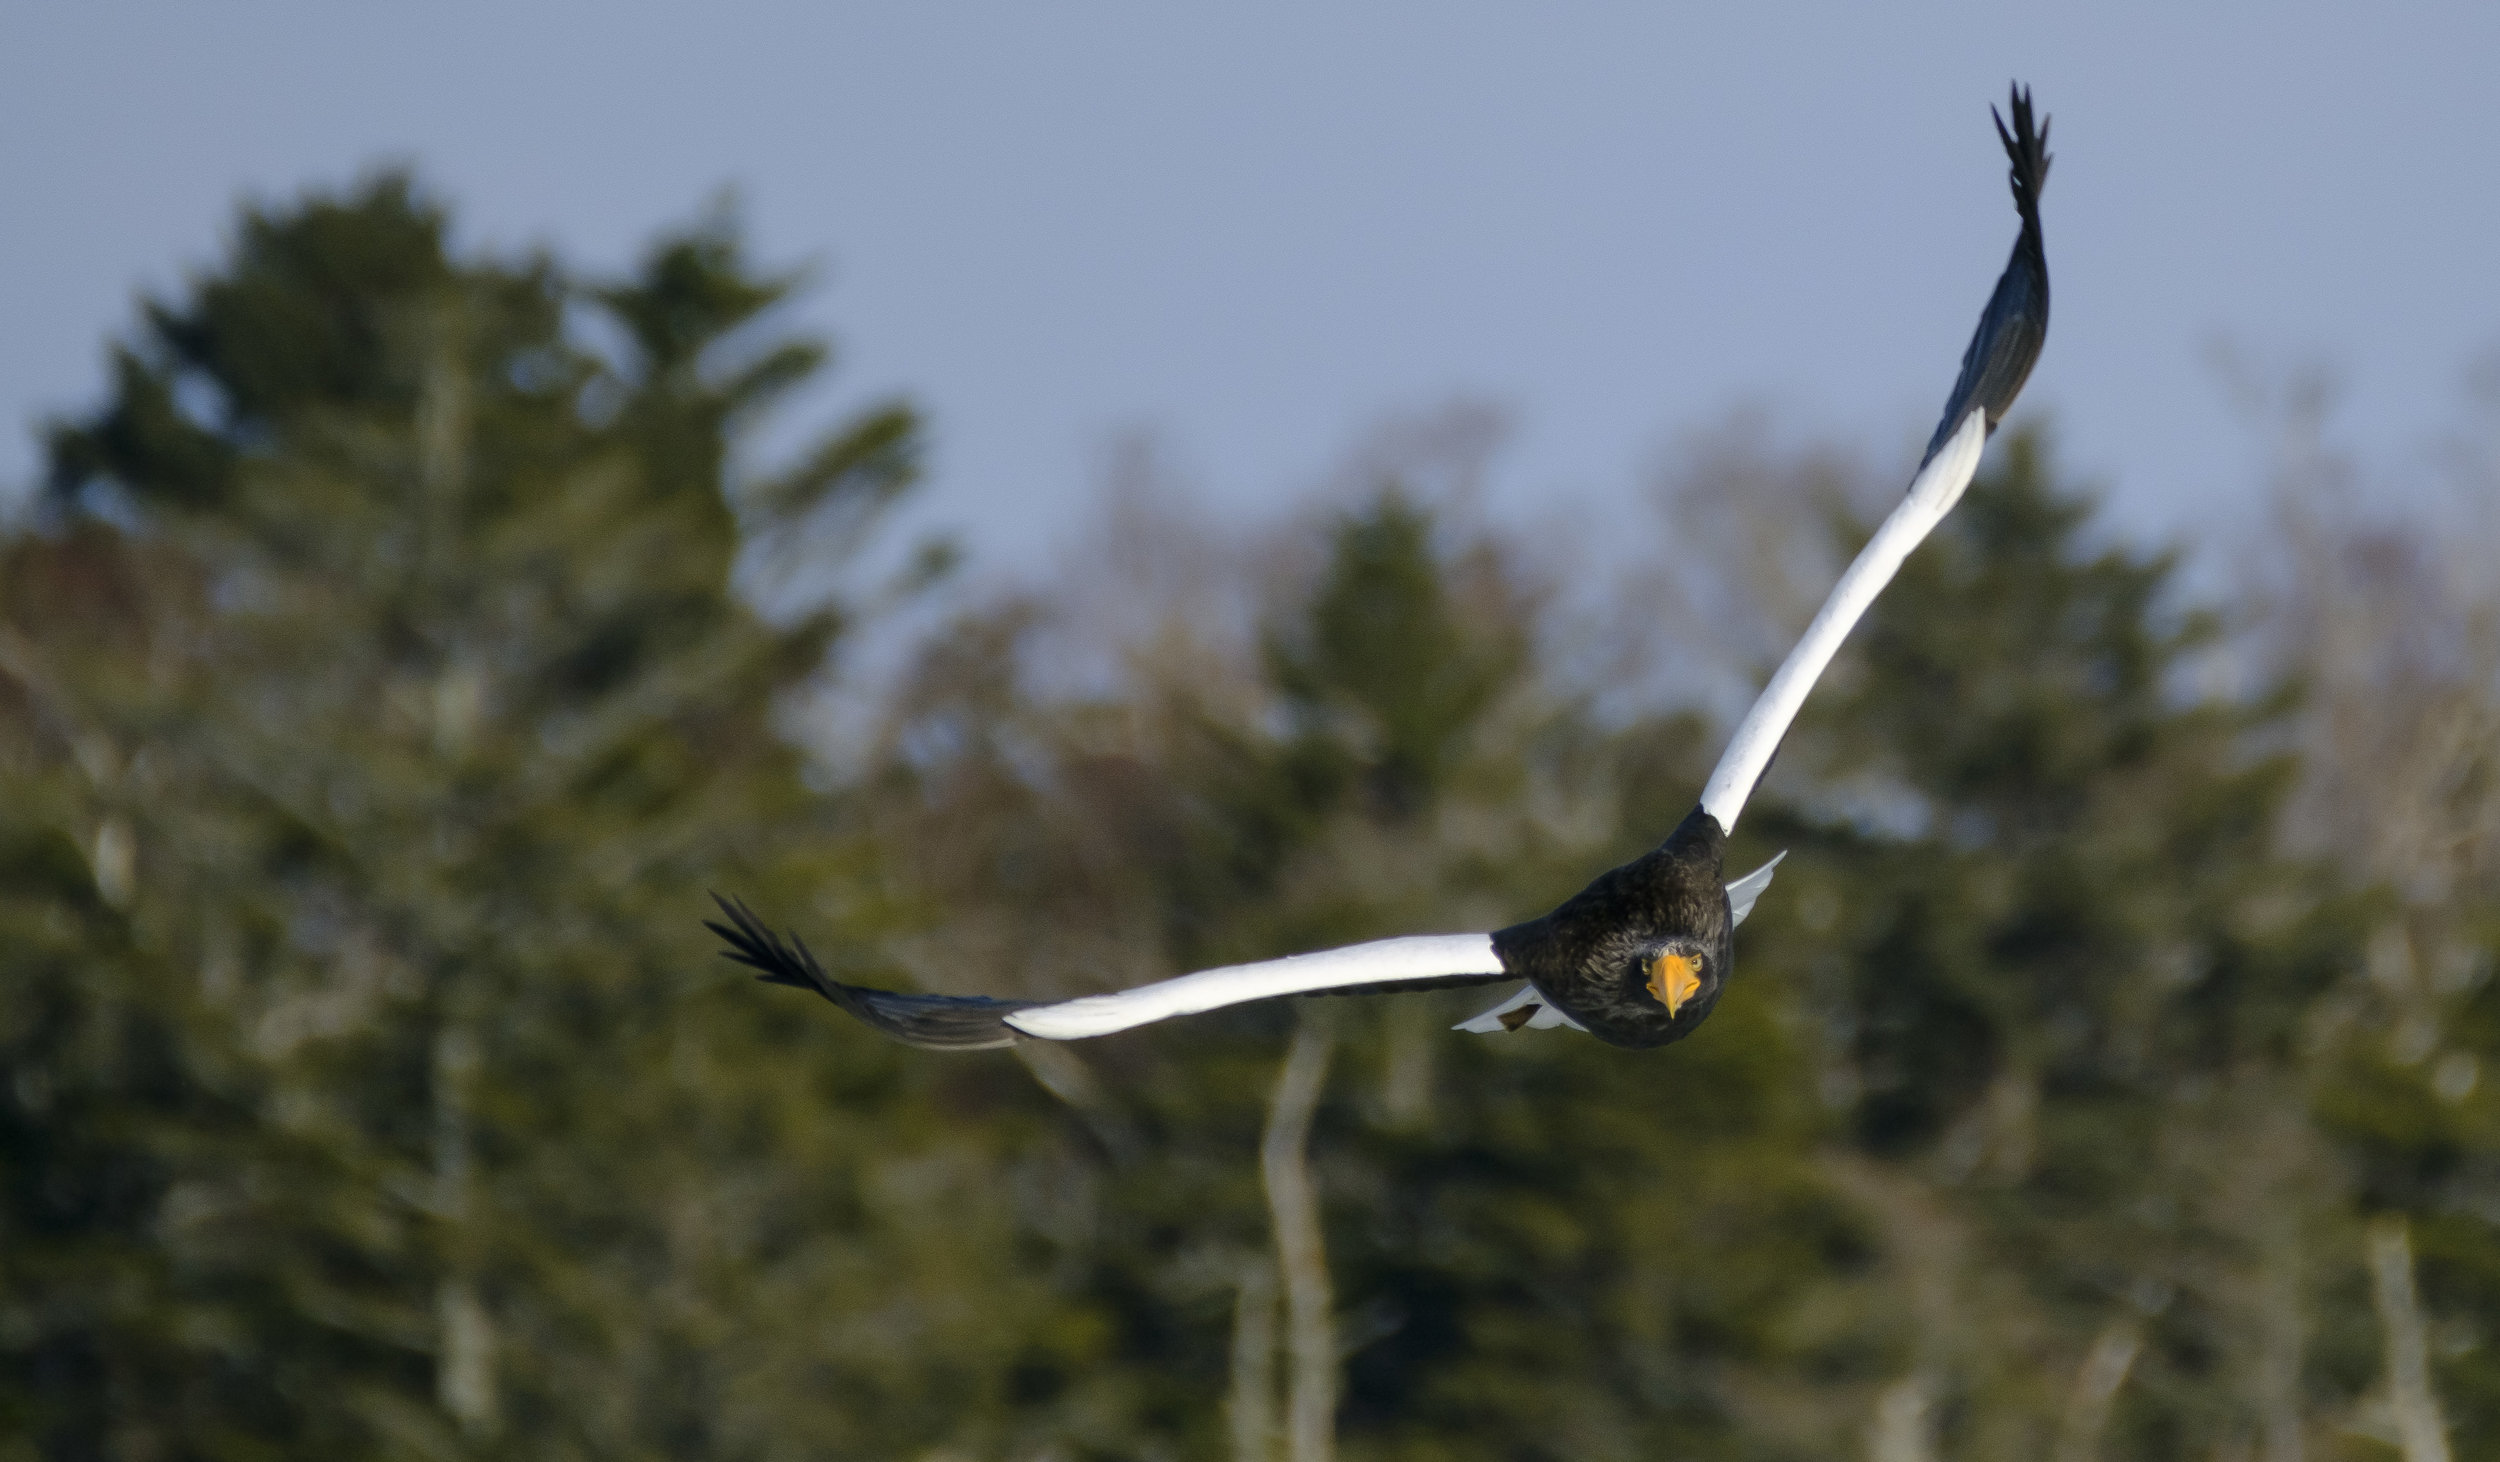 Tracking a Steller's Sea Eagle at F8? Not a problem - XF 100-400mm + XF 1.4TC